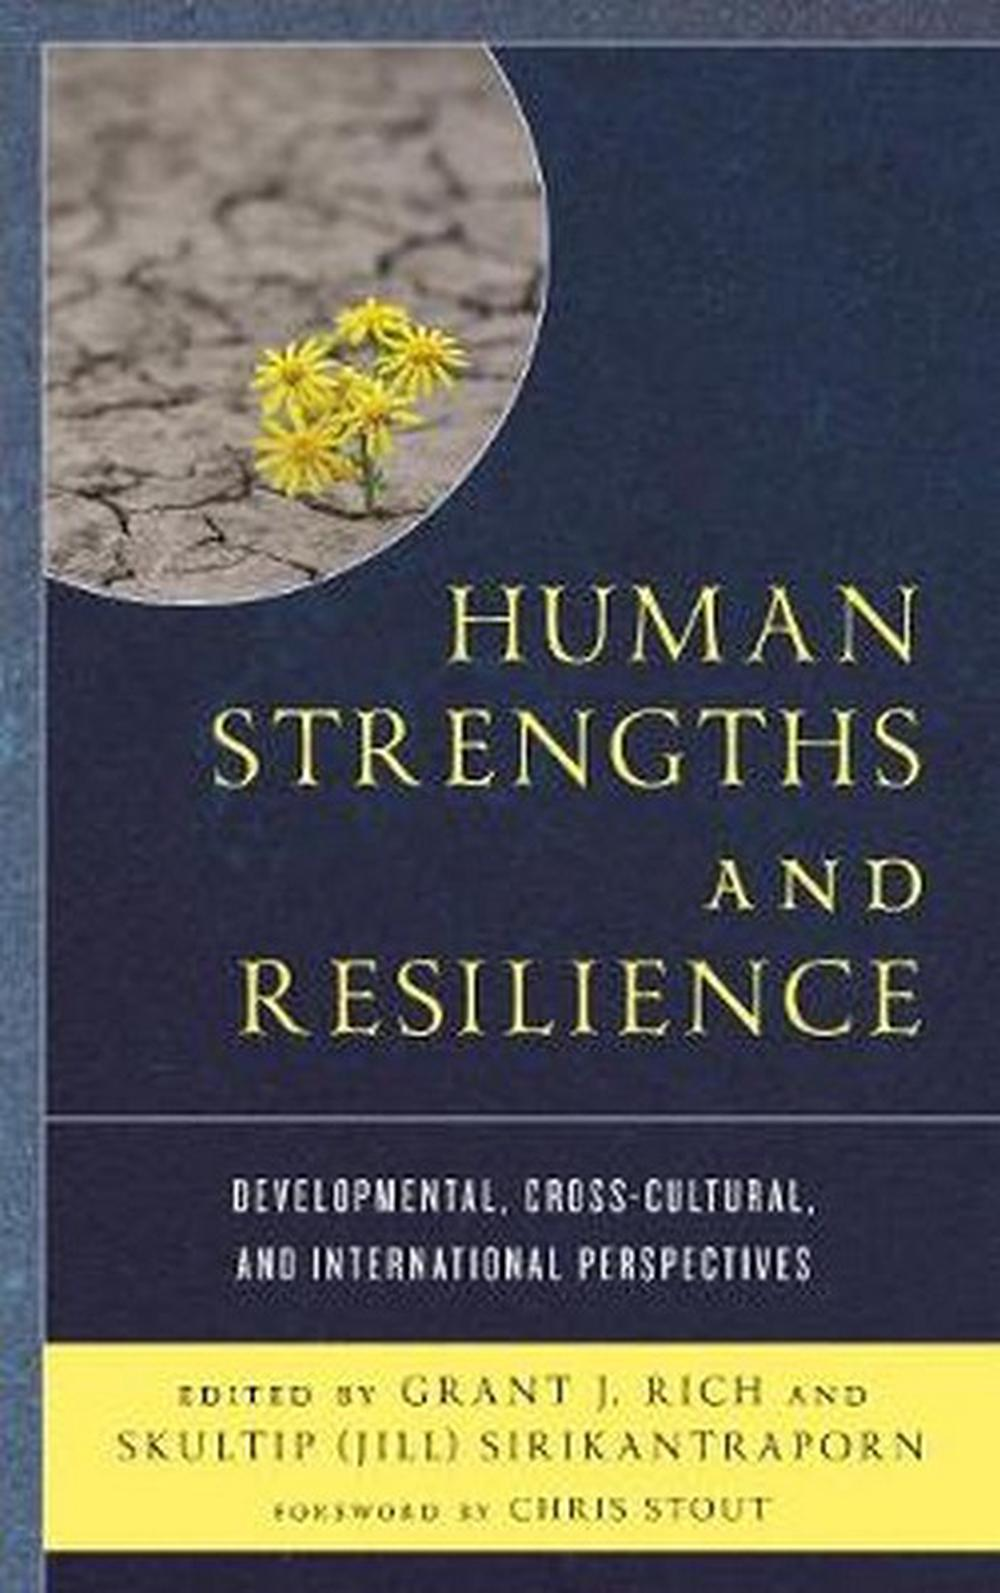 Human-Strengths-and-Resilience-Hardcover-Book